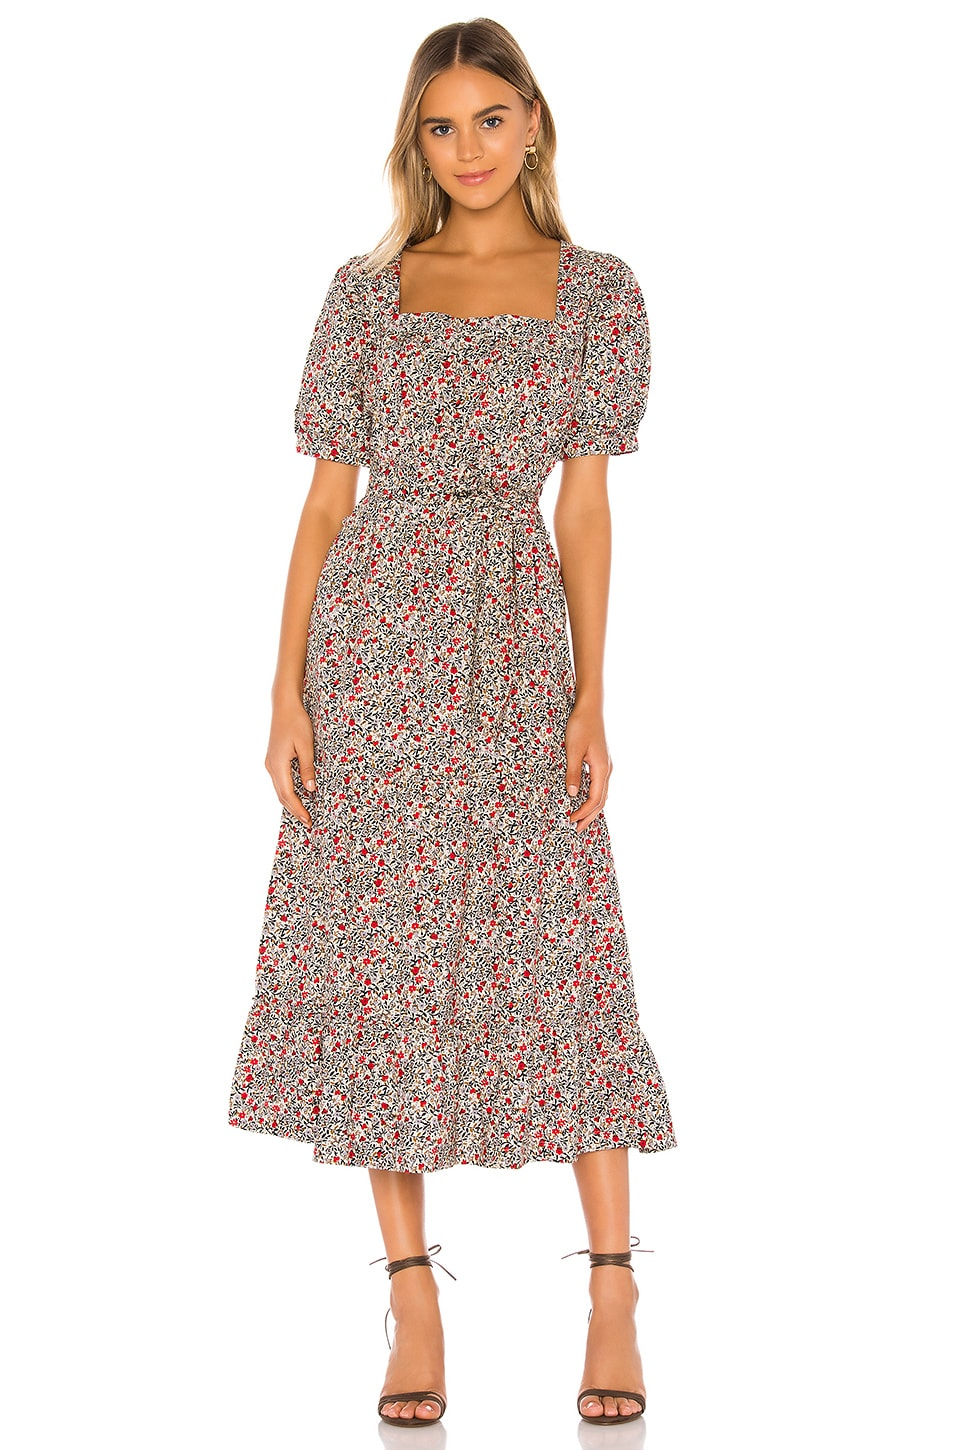 Heartlands Maxi Dress             Free People                                                                                                                                         Sale price:                                                                       CA$ 116.55                                                                  Previous price:                                                                       CA$ 207.83 4